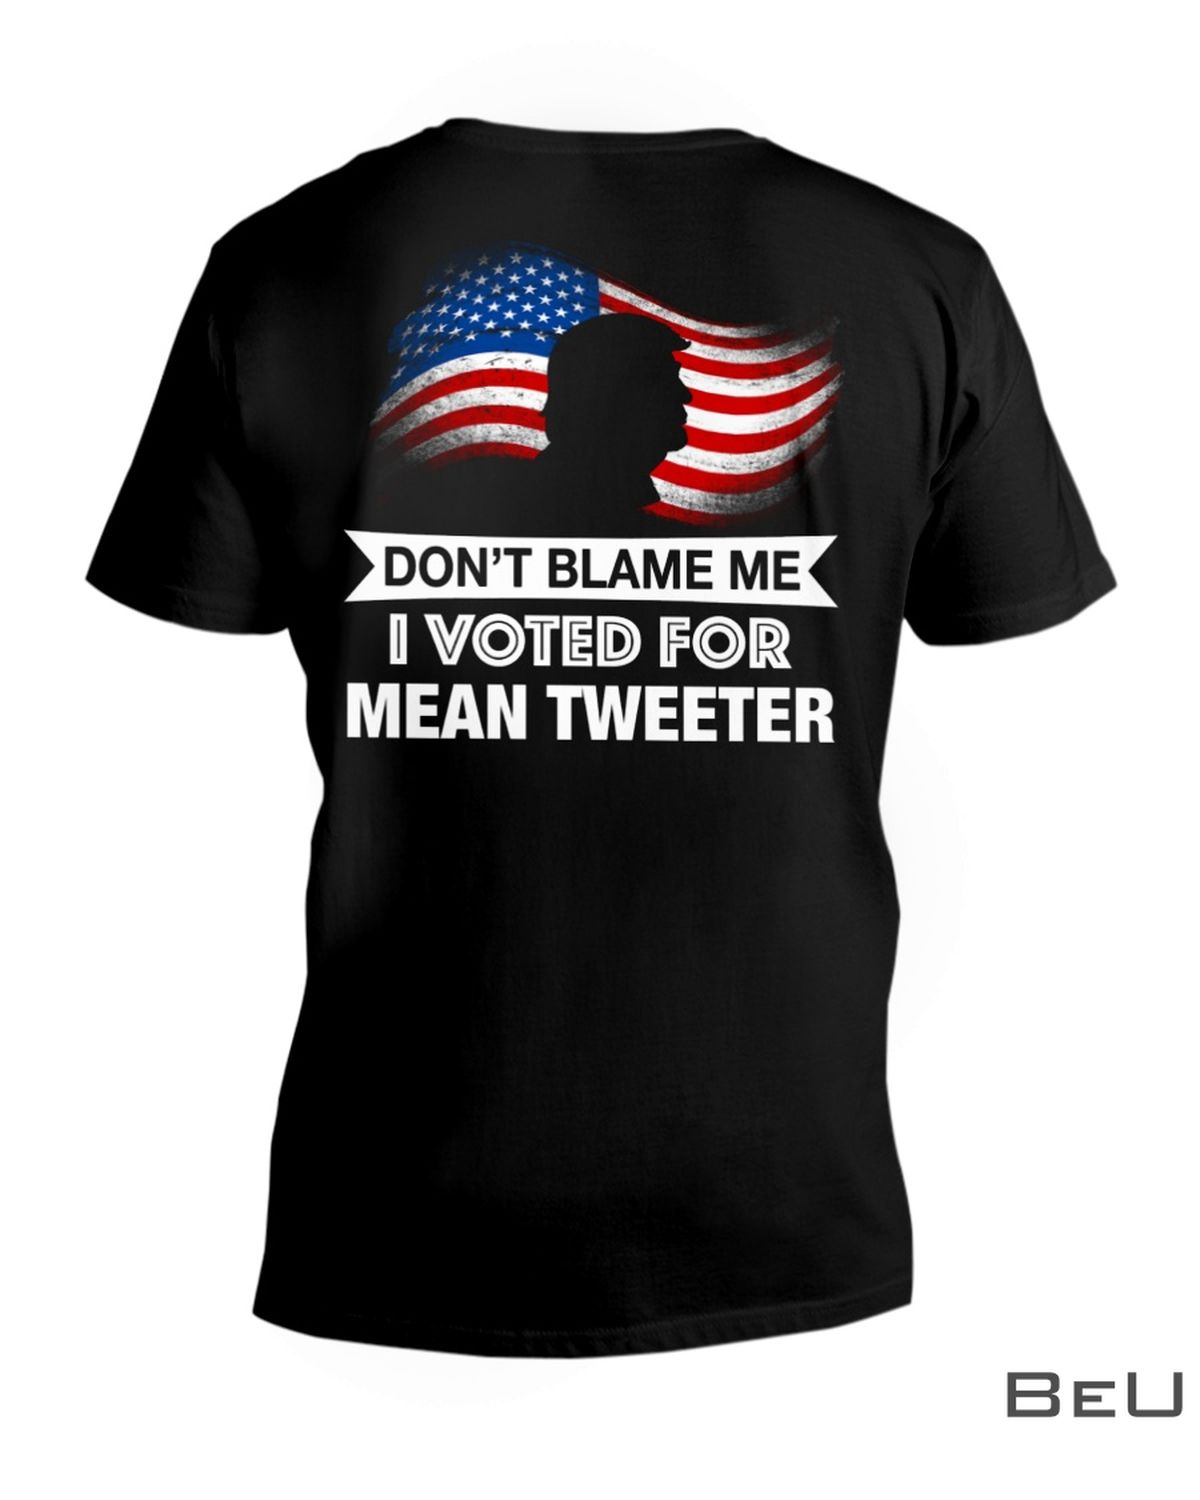 Don't Blame Me I Voted For Mean Tweeter Shirtx